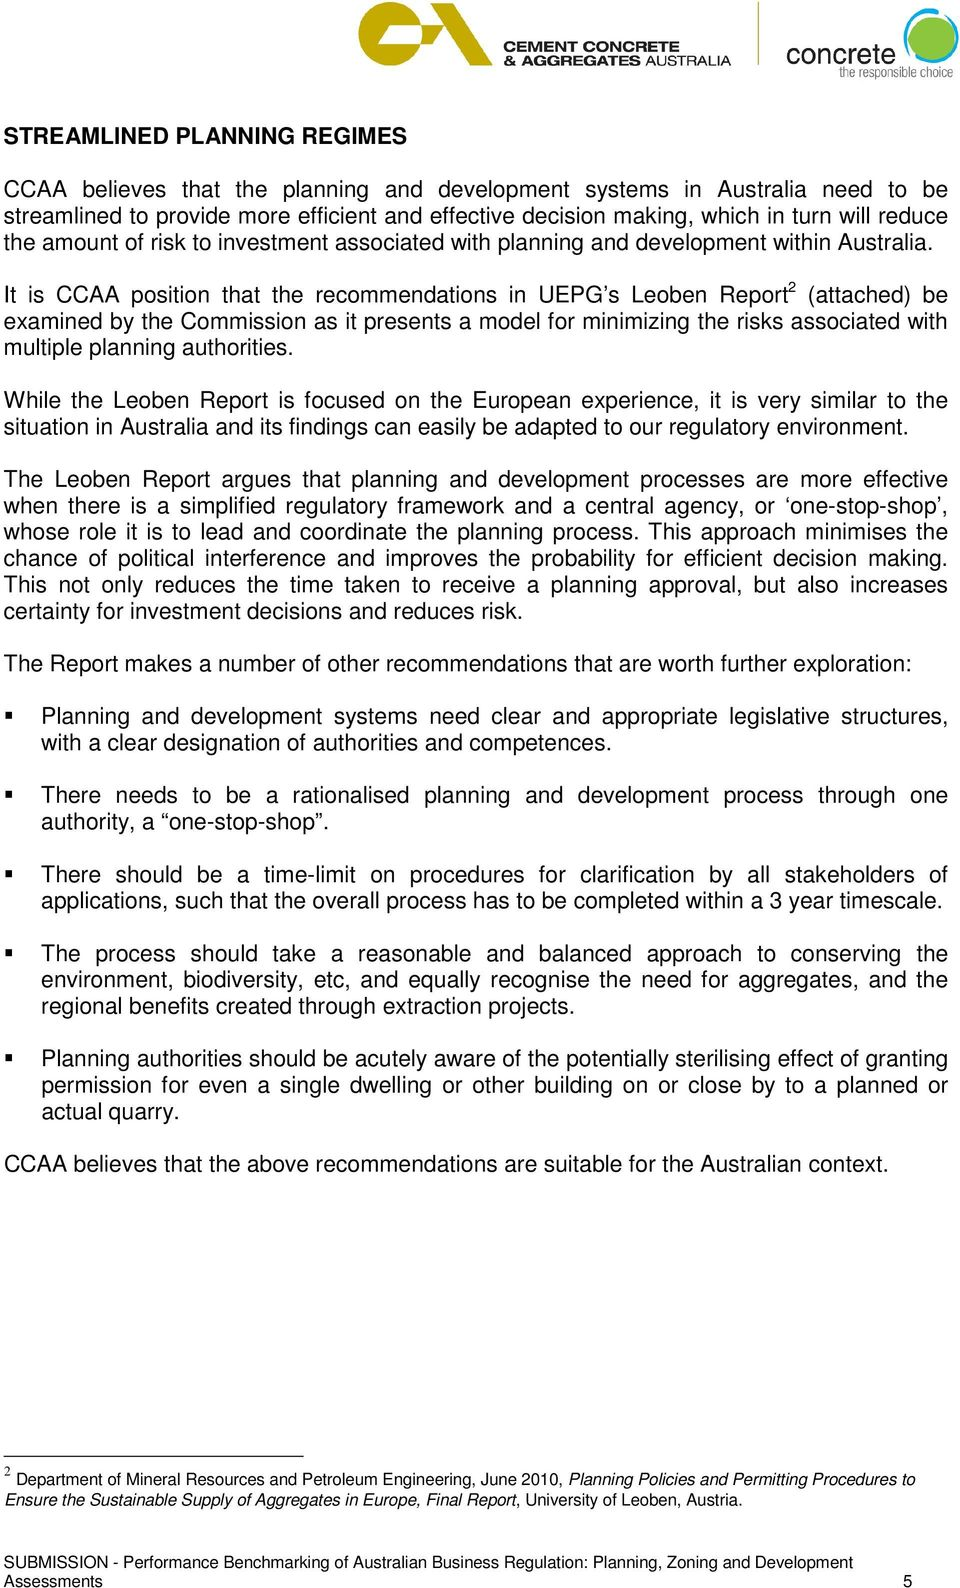 It is CCAA position that the recommendations in UEPG s Leoben Report 2 (attached) be examined by the Commission as it presents a model for minimizing the risks associated with multiple planning